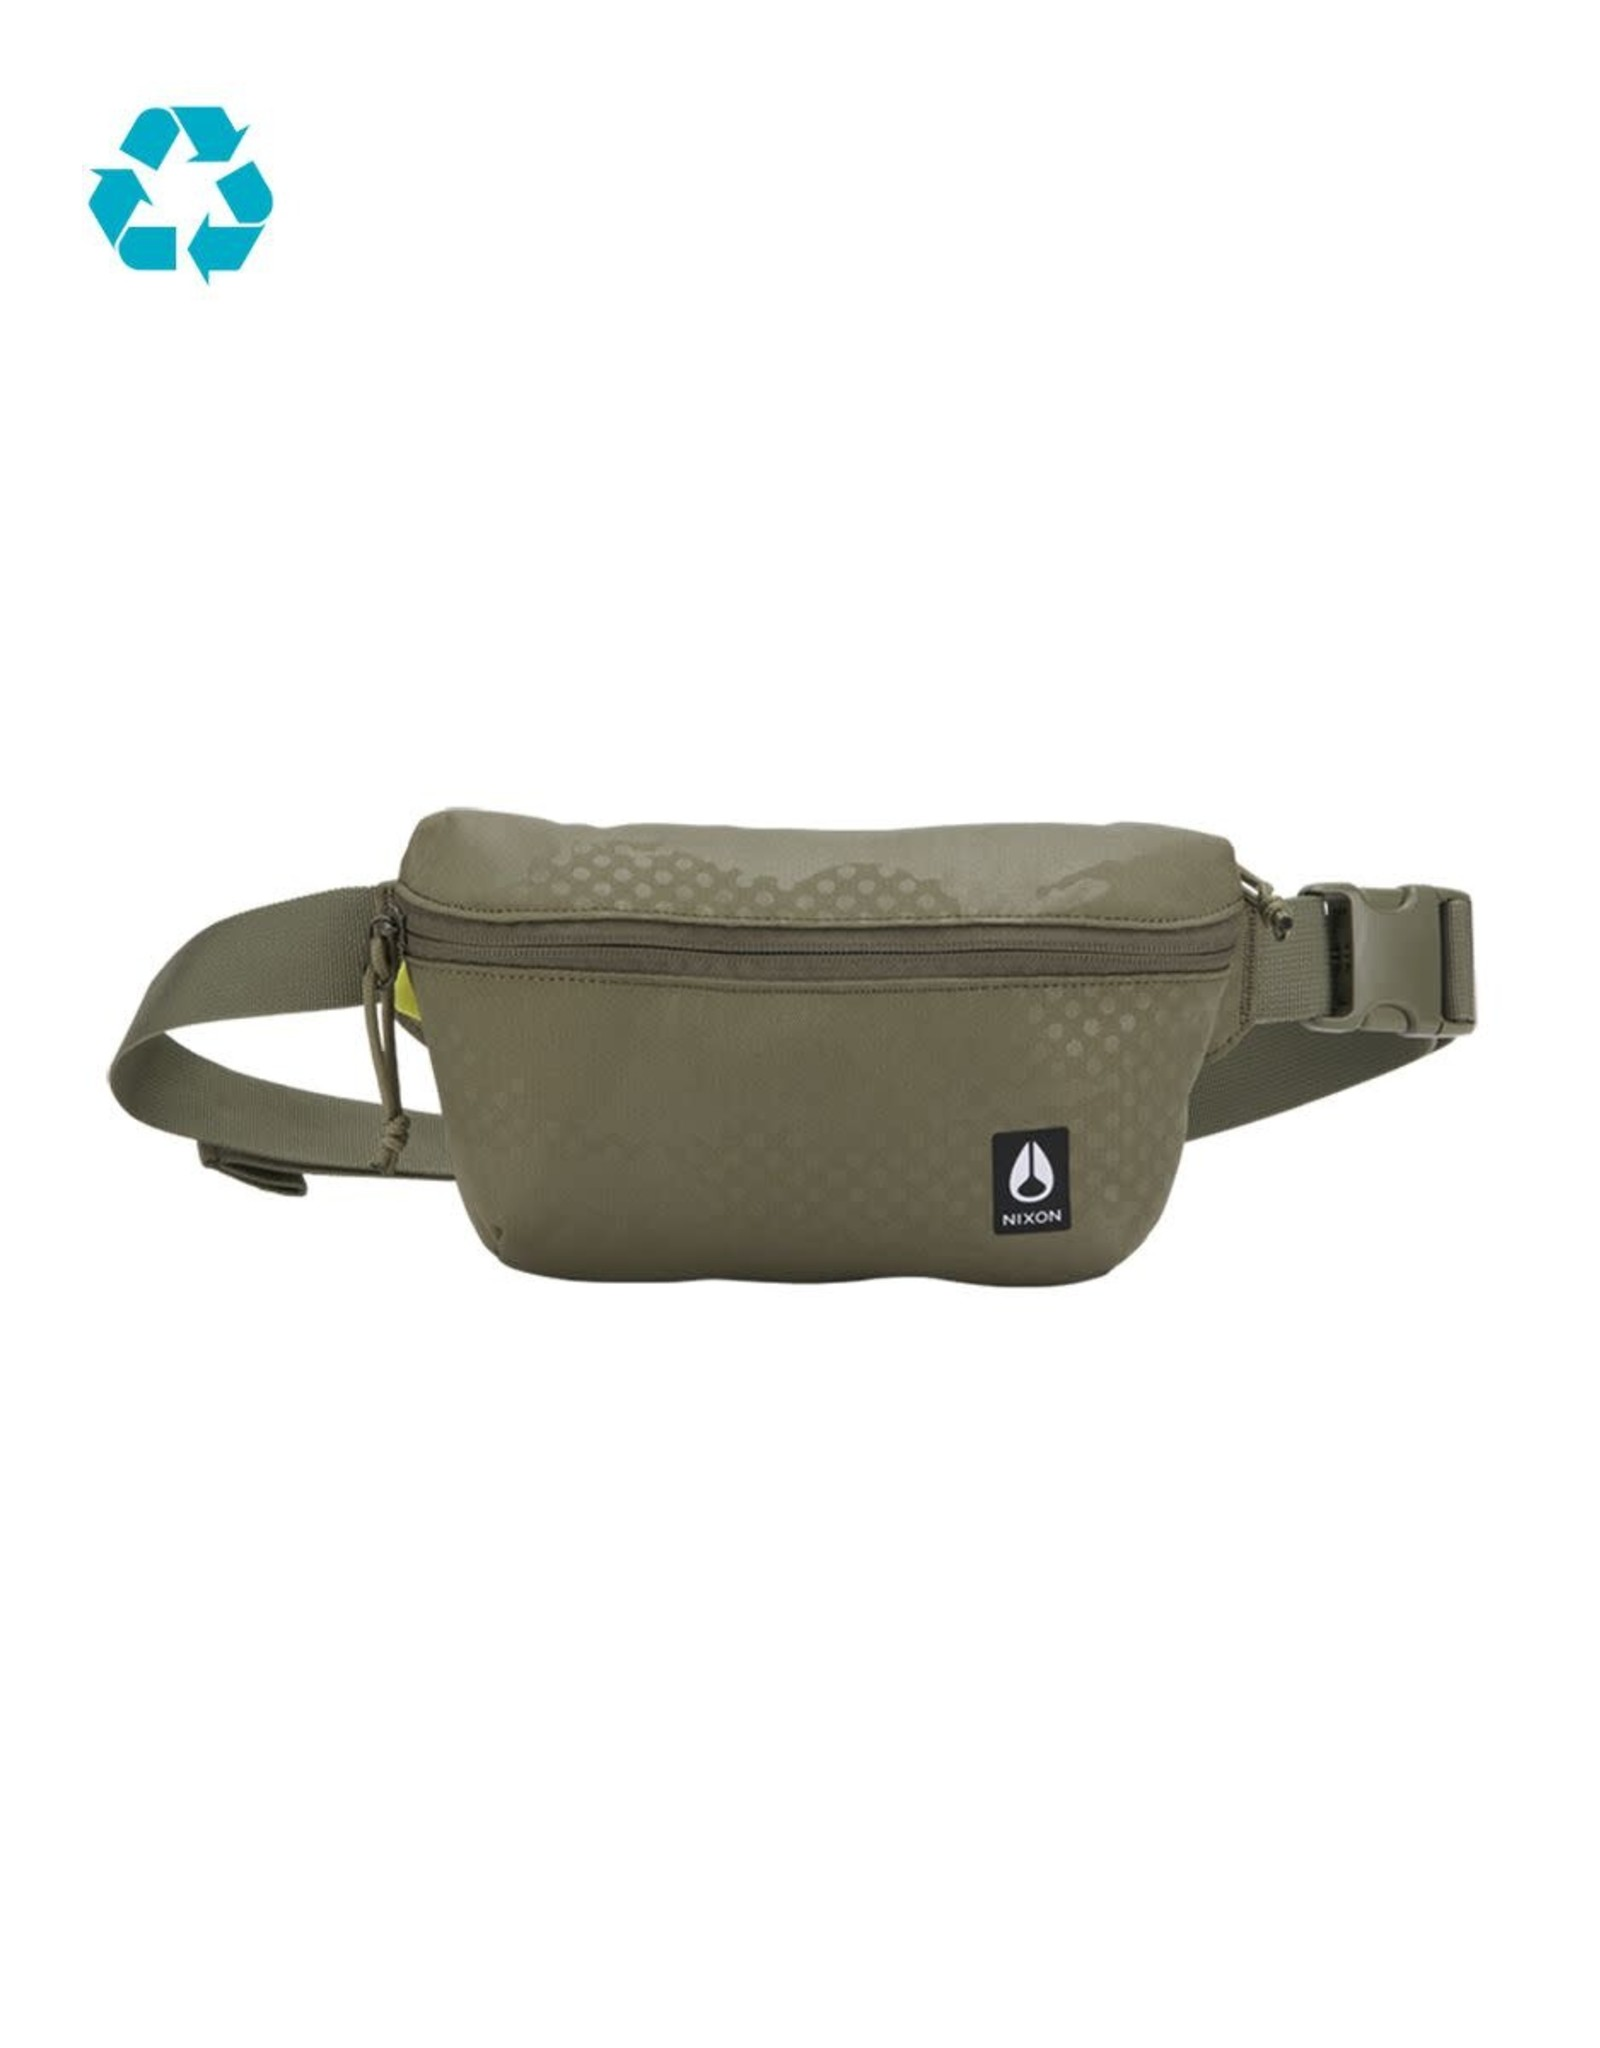 NIXON Sidekick Hip Pack